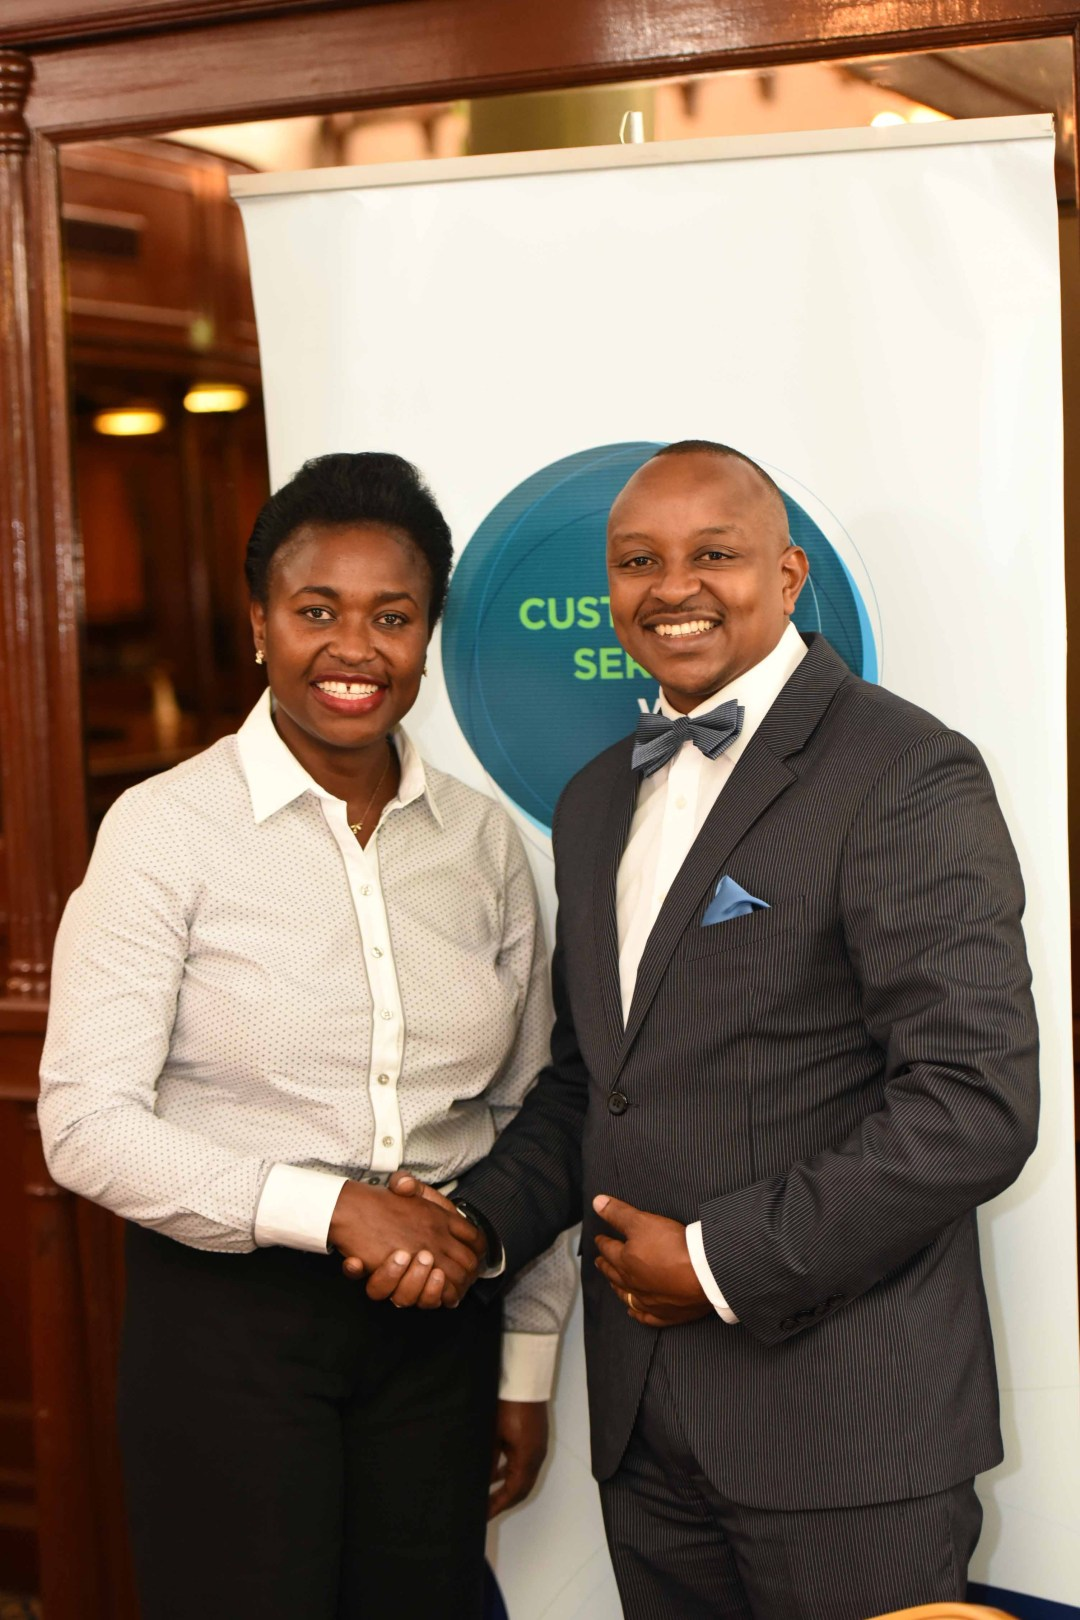 Incoming-Board-Member-Jannet-Atika-shakes-hands-with-outgoing-board-member-Job-Njiru